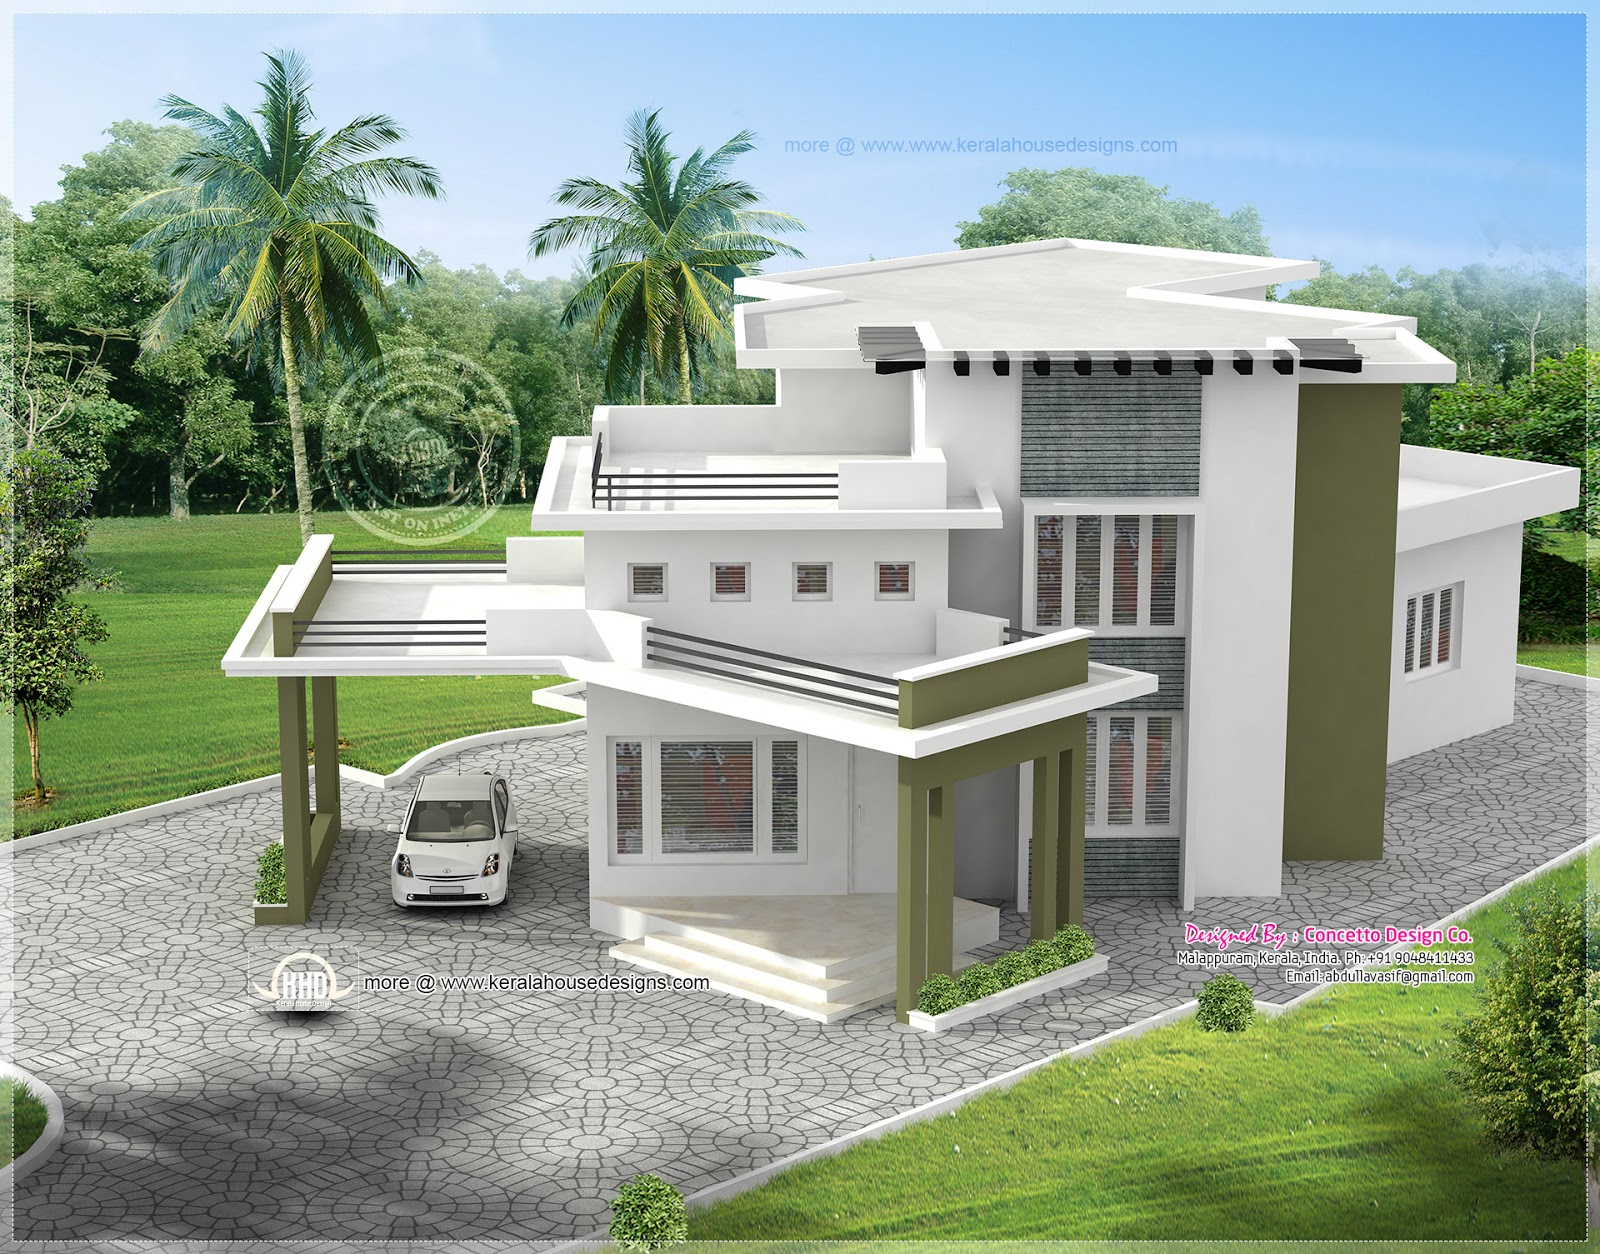 5 different house exteriors by Concetto Design - Kerala ...